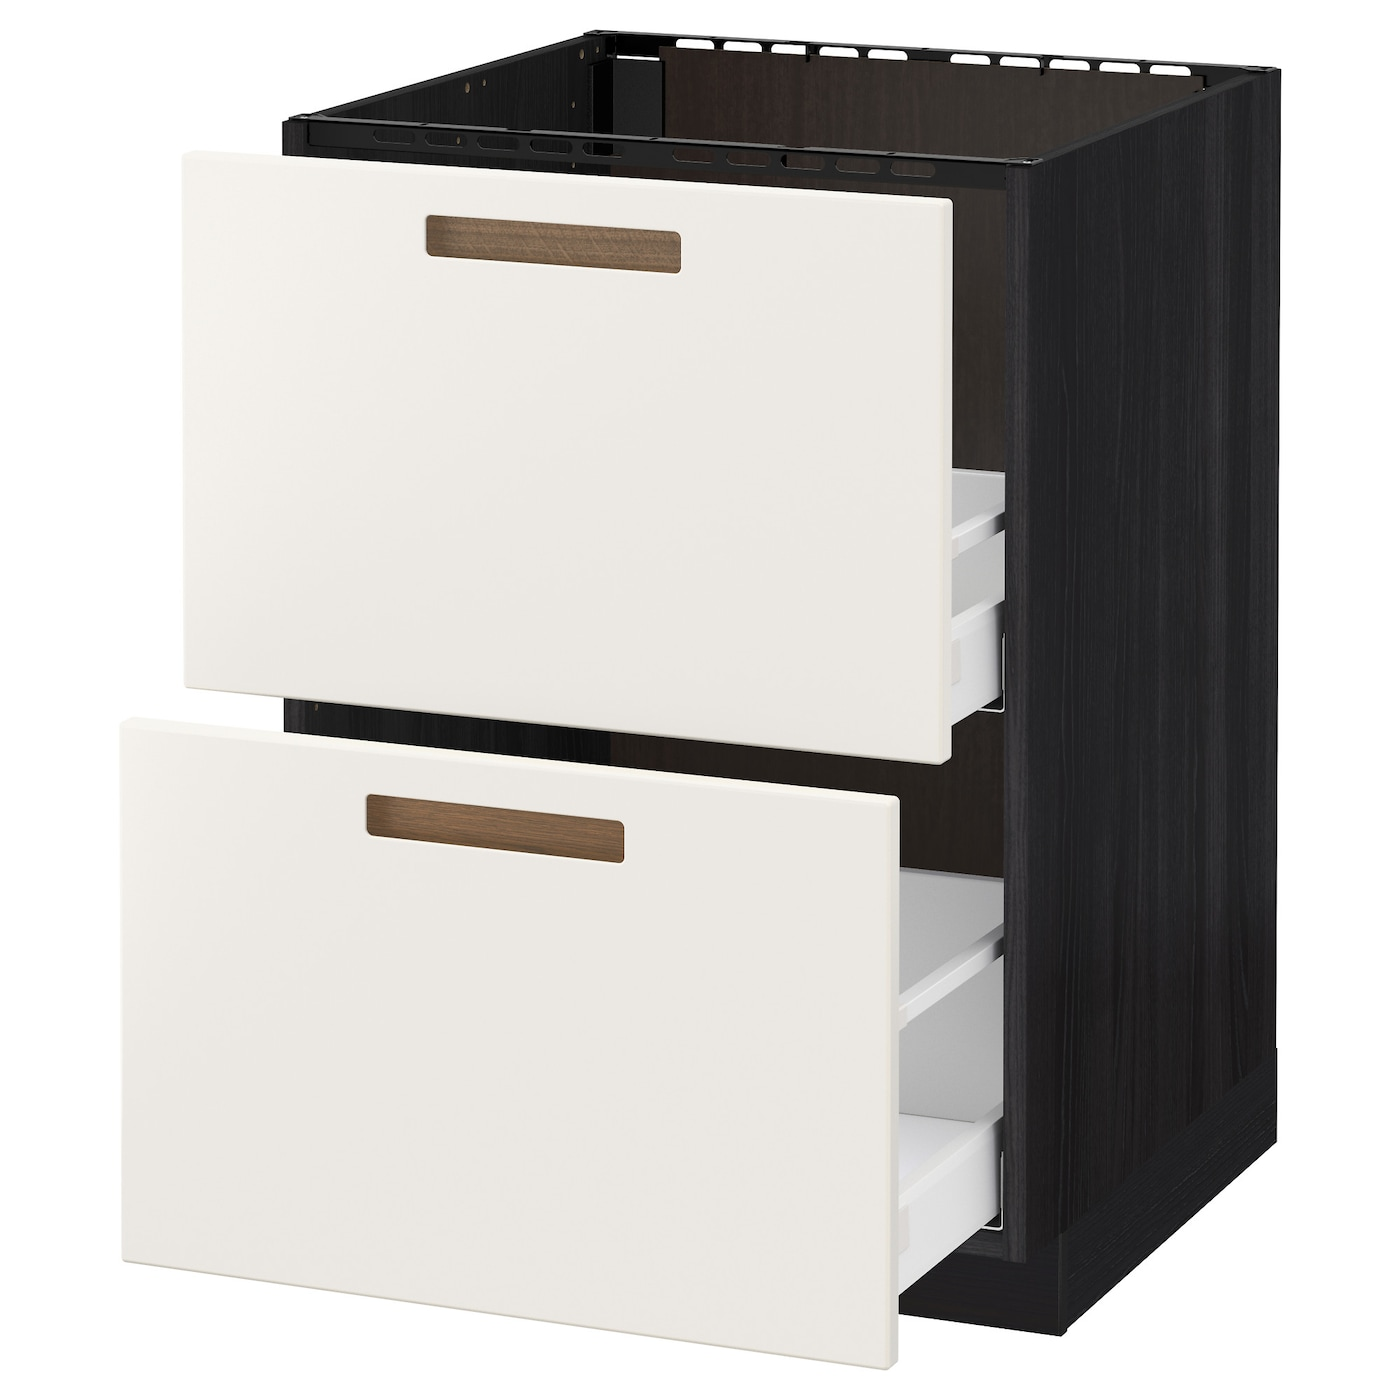 IKEA METOD/MAXIMERA base cab f sink+2 fronts/2 drawers